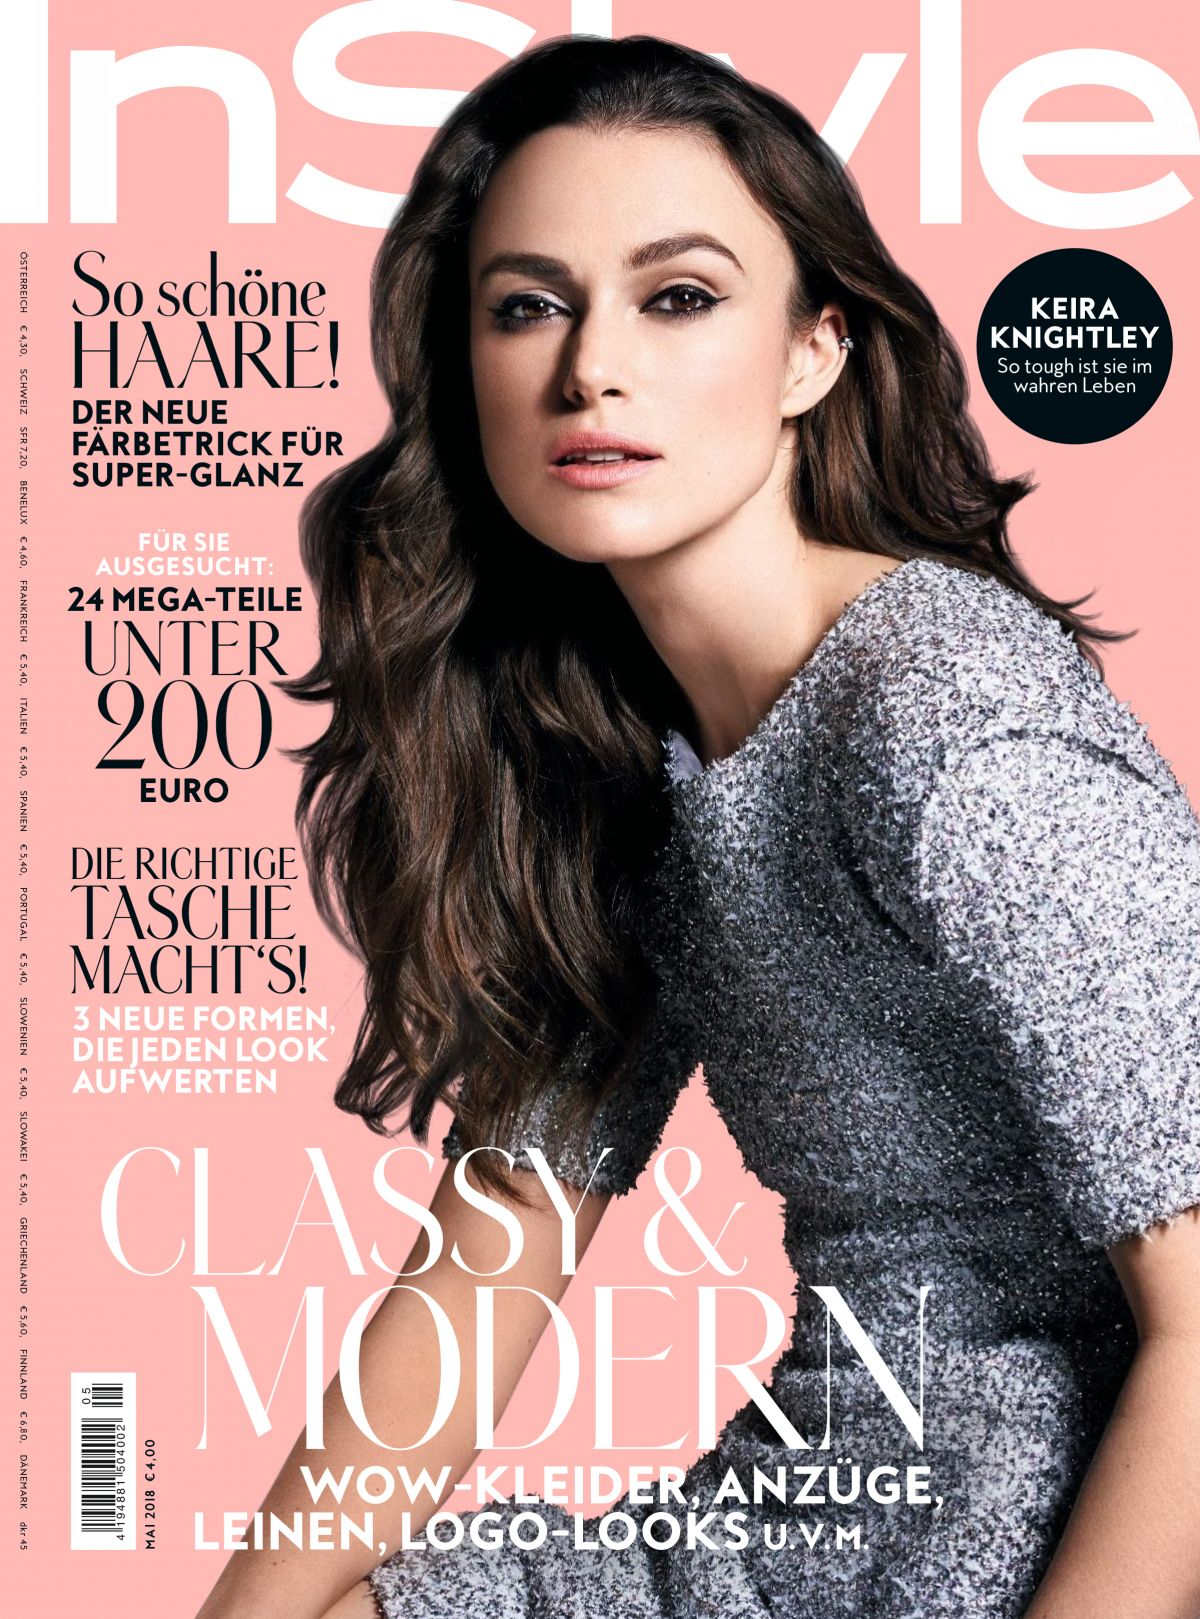 Instyle Magazine Us: KEIRA KNIGHTLEY In Instyle Magazine, Germany May 2018